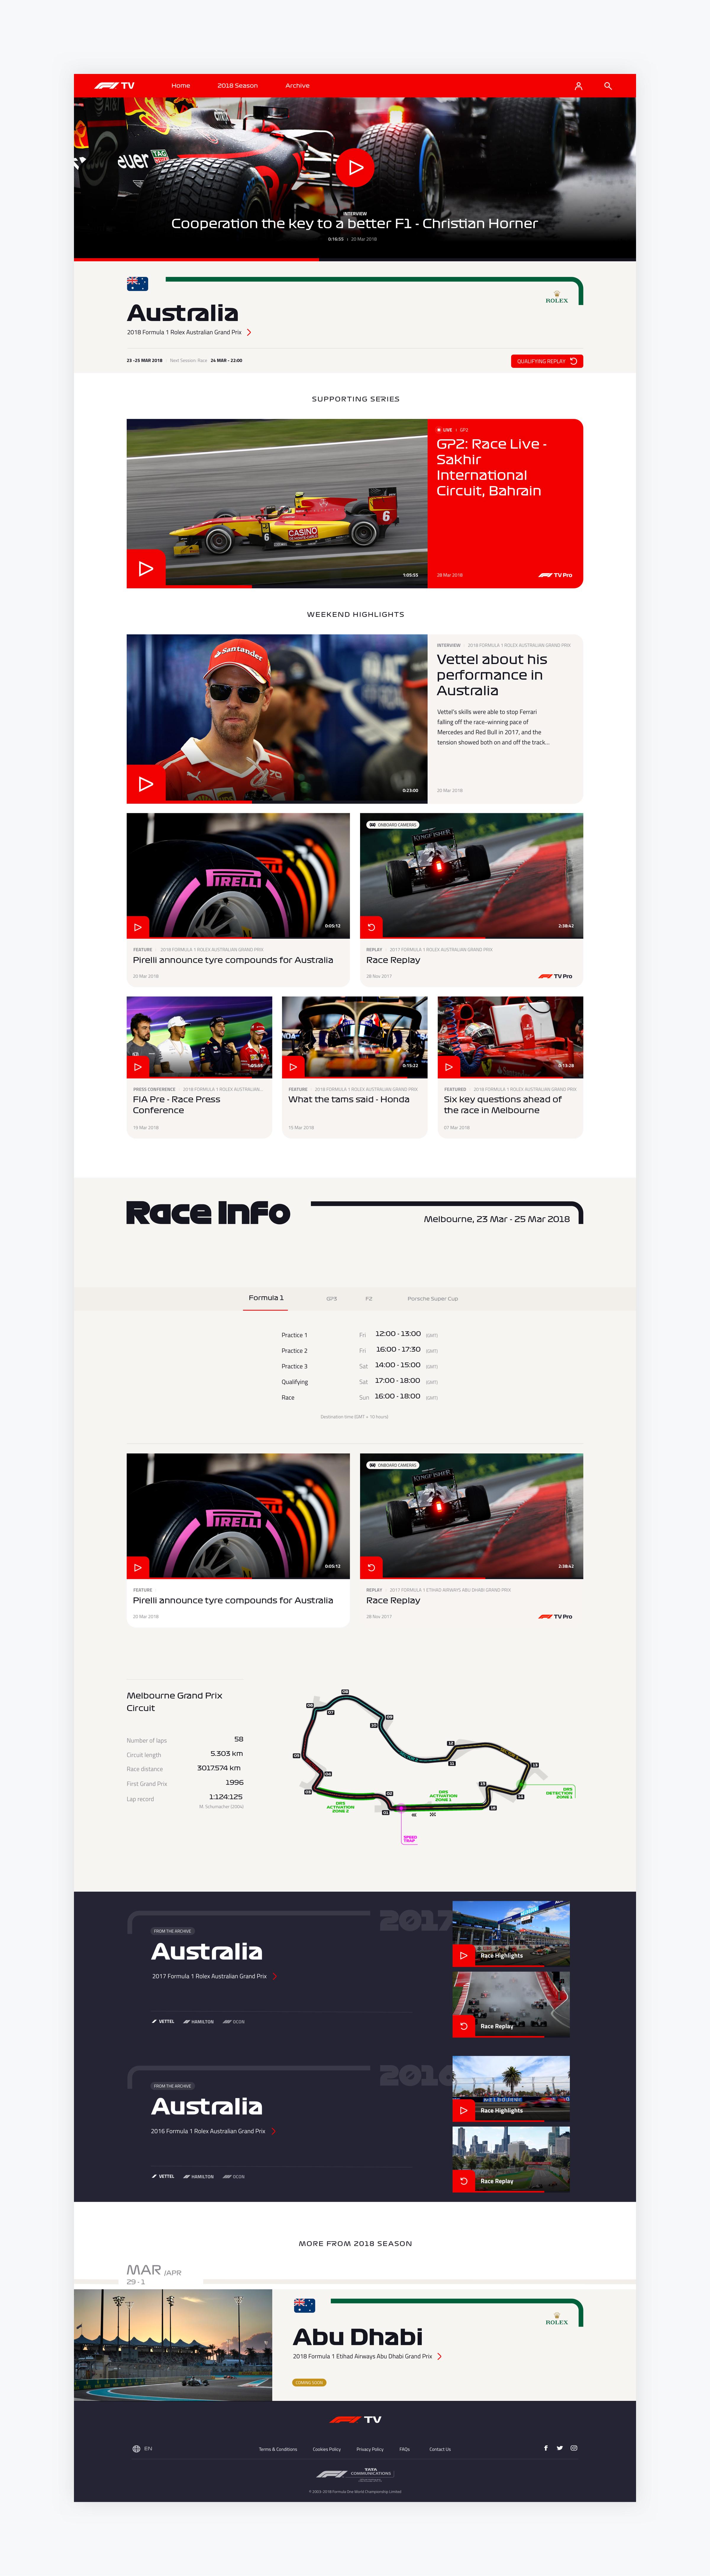 F1TV - New user experience paradigm